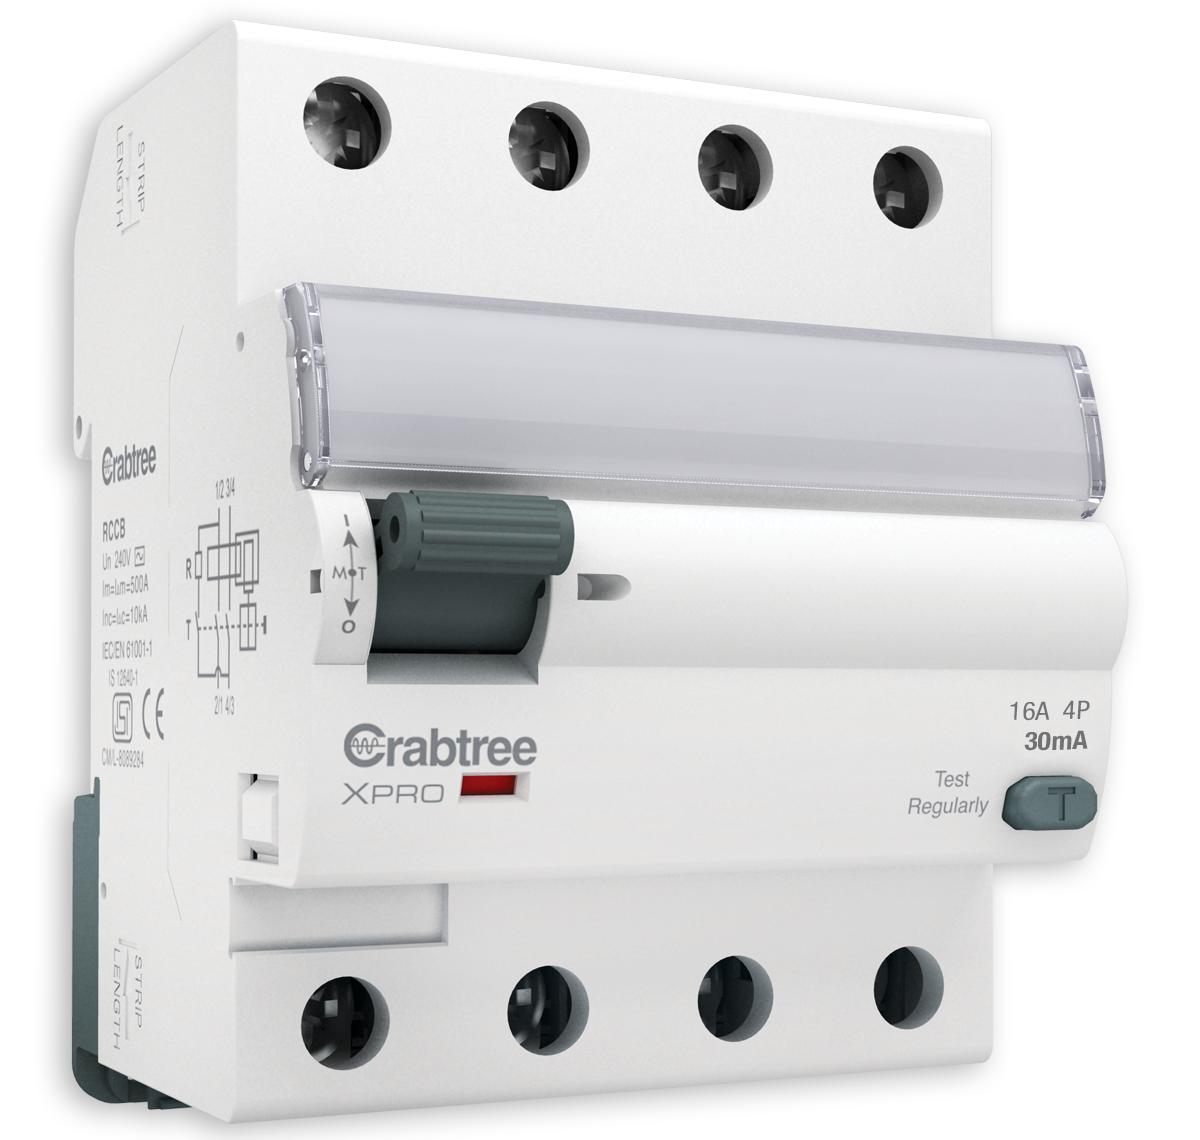 Crabtree - RCCB  A  Type FP 30mA-16A